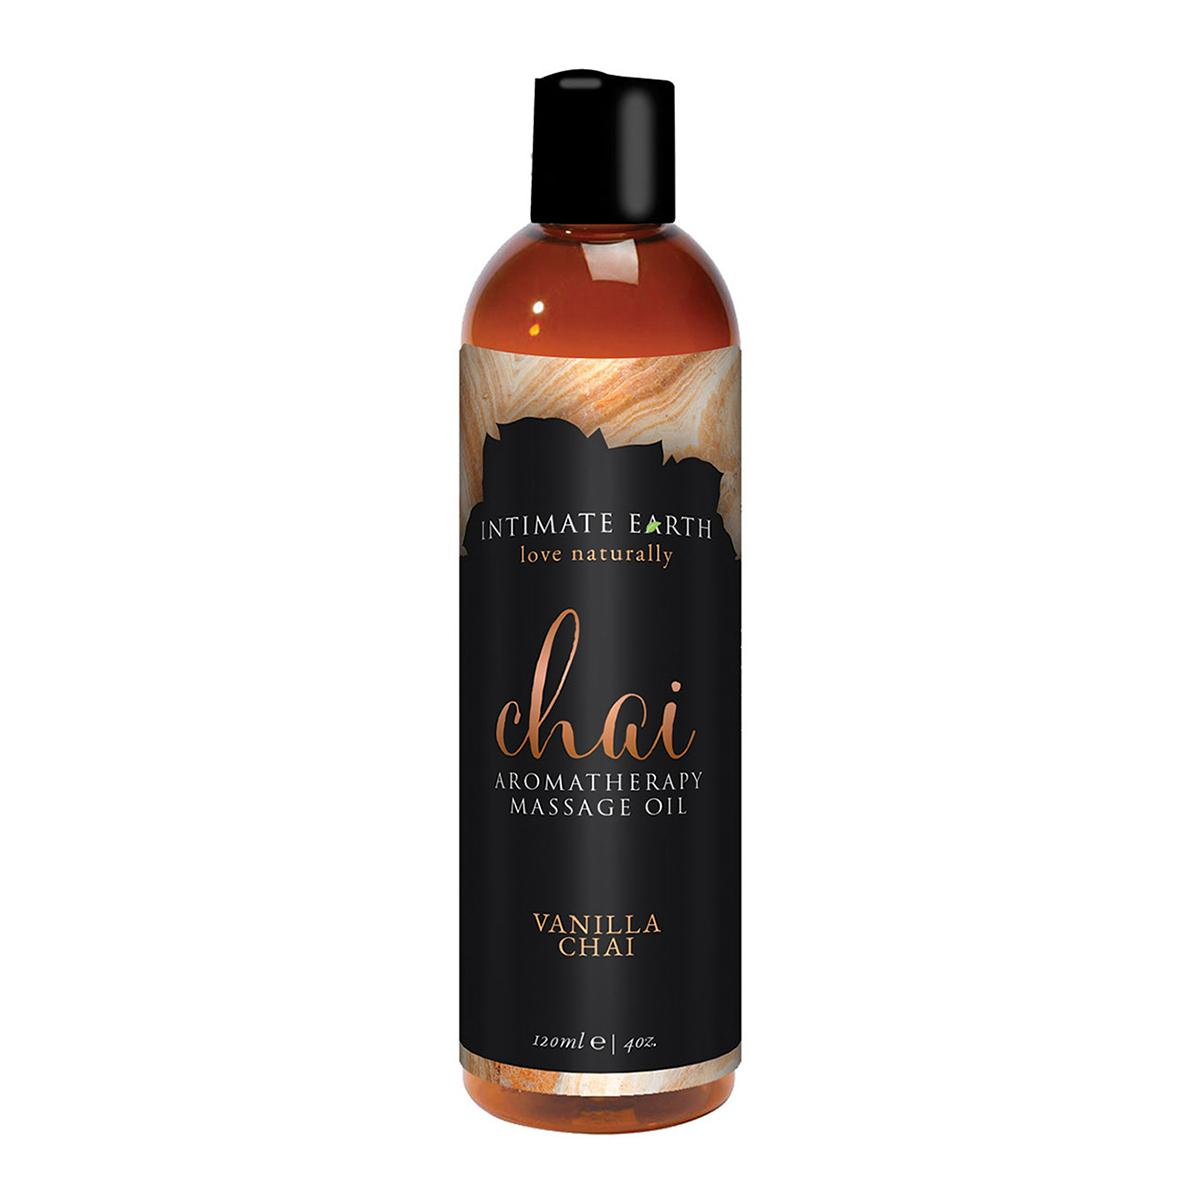 Intimate Earth Massage Oil - Chai 4oz